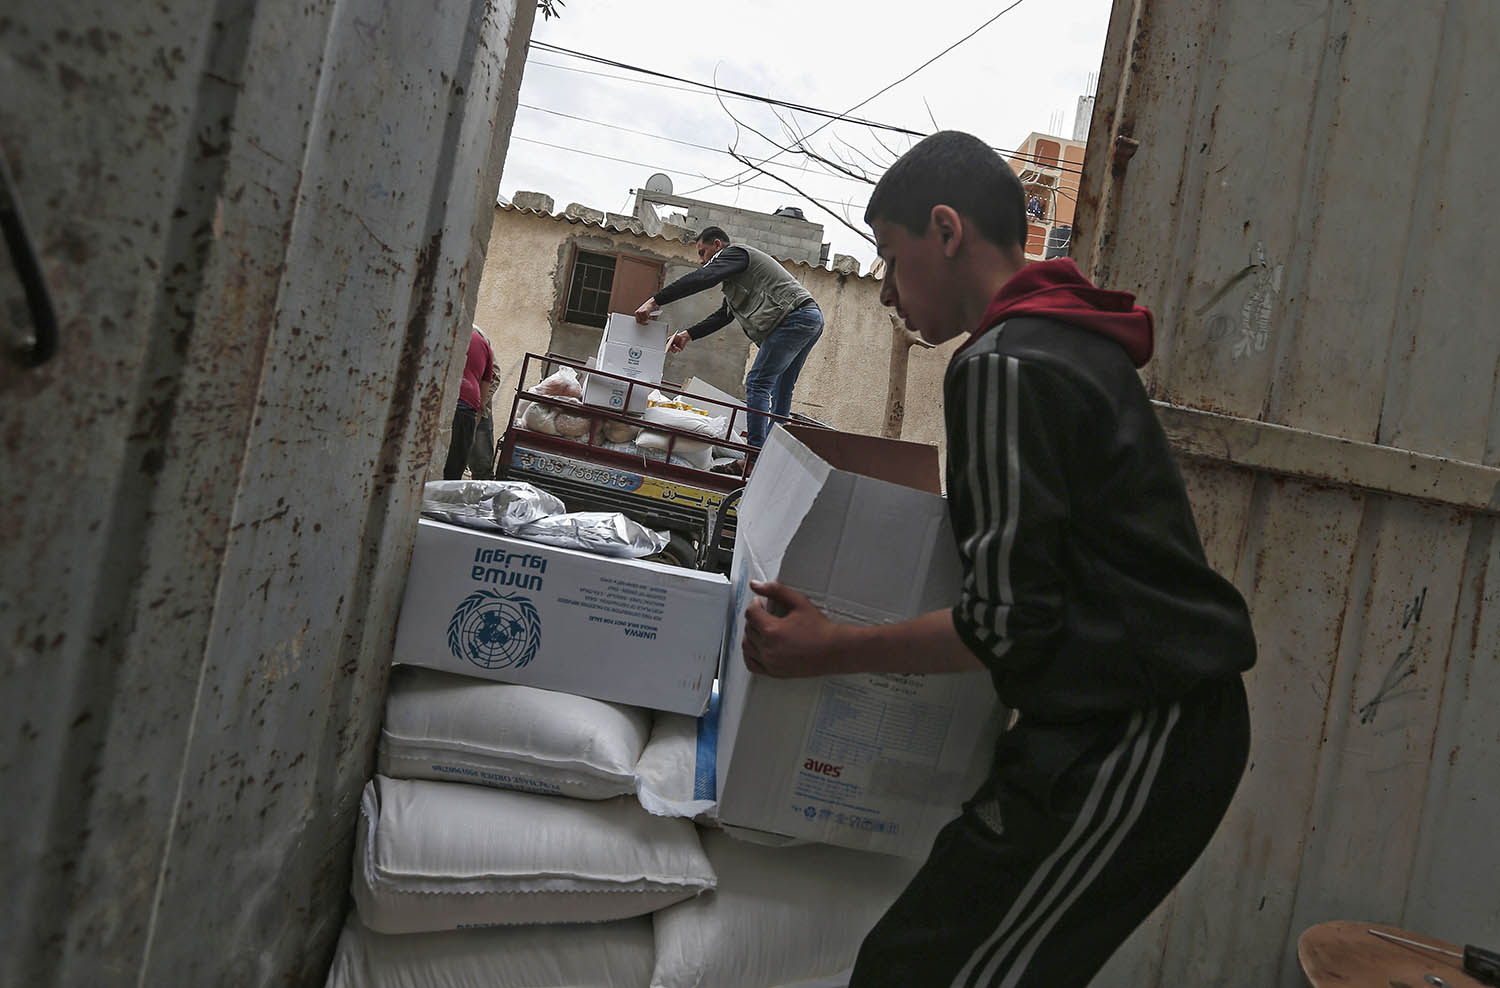 A Palestinian youth transports food rations stacked at his family home doorway by workers with the U.N. Relief and Works Agency for Palestinian Refugees in Gaza City on March 31, 2020, as aid is delivered rather than distributed at a U.N. center, due to the COVID-19 pandemic.